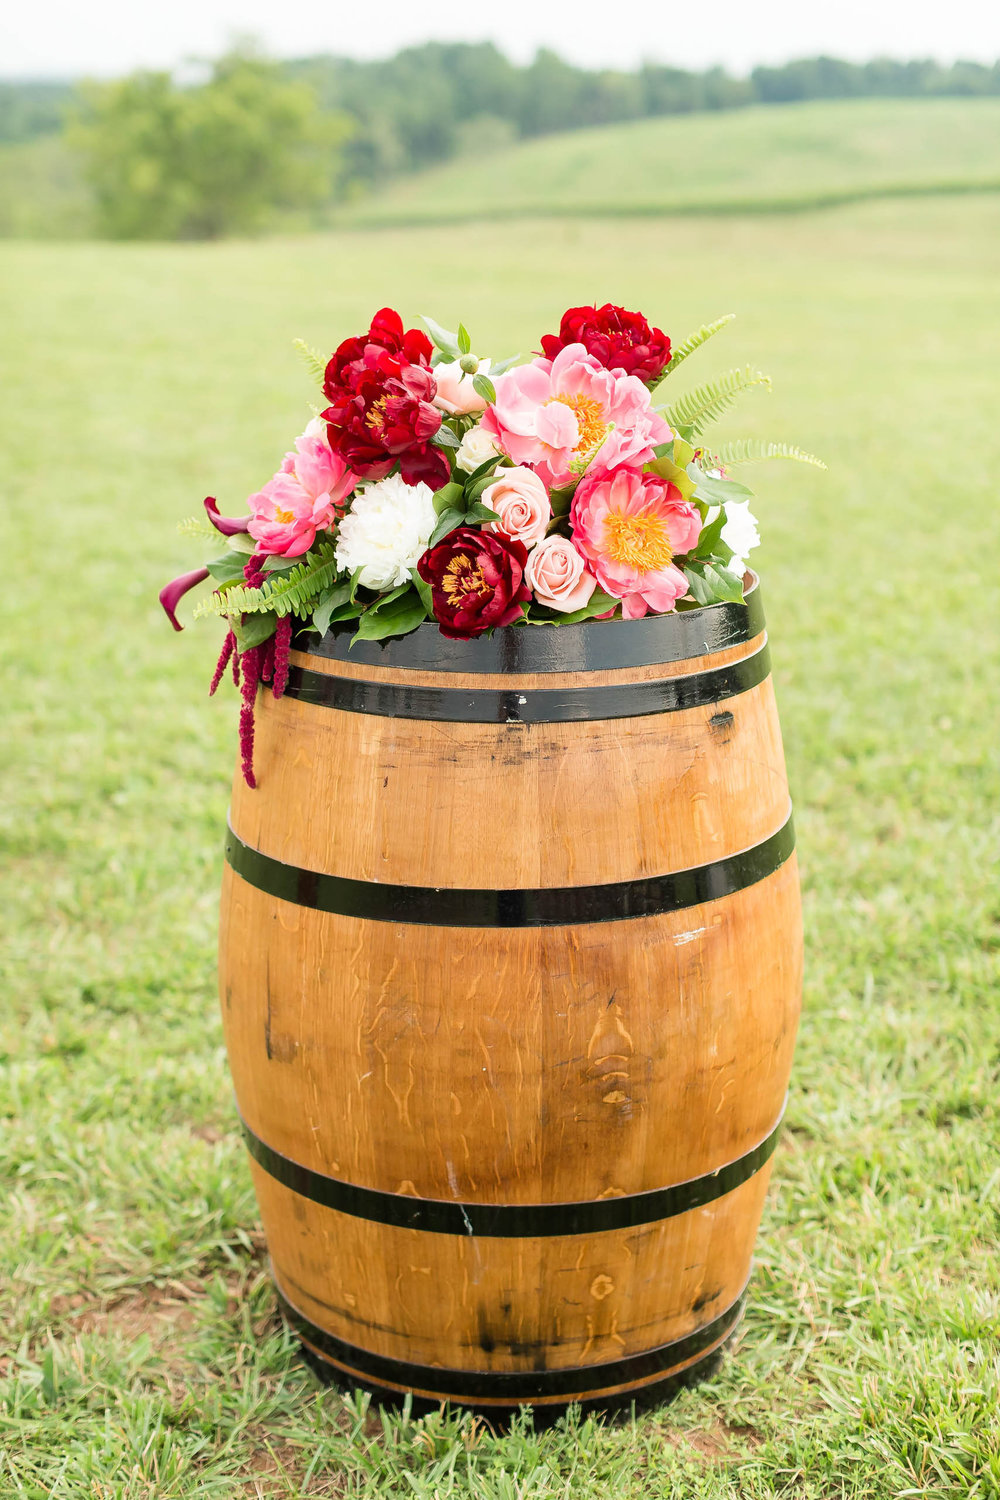 Nunely-adele-wine-barrel2.jpg